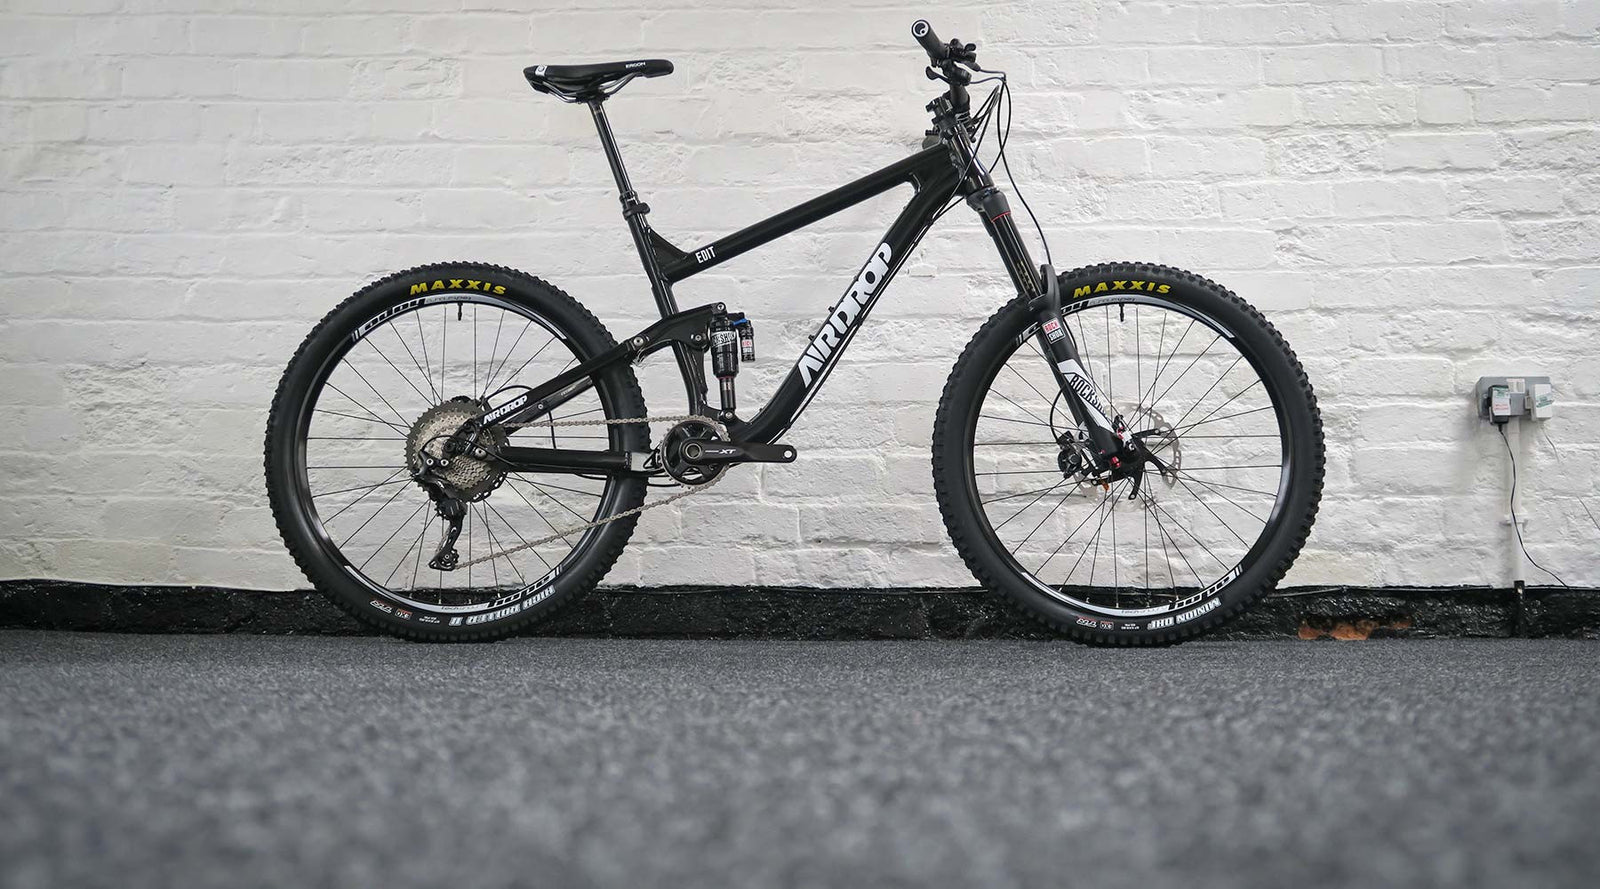 Dave's Bike - Airdrop Edit v2 with Shimano XT Drivetrain